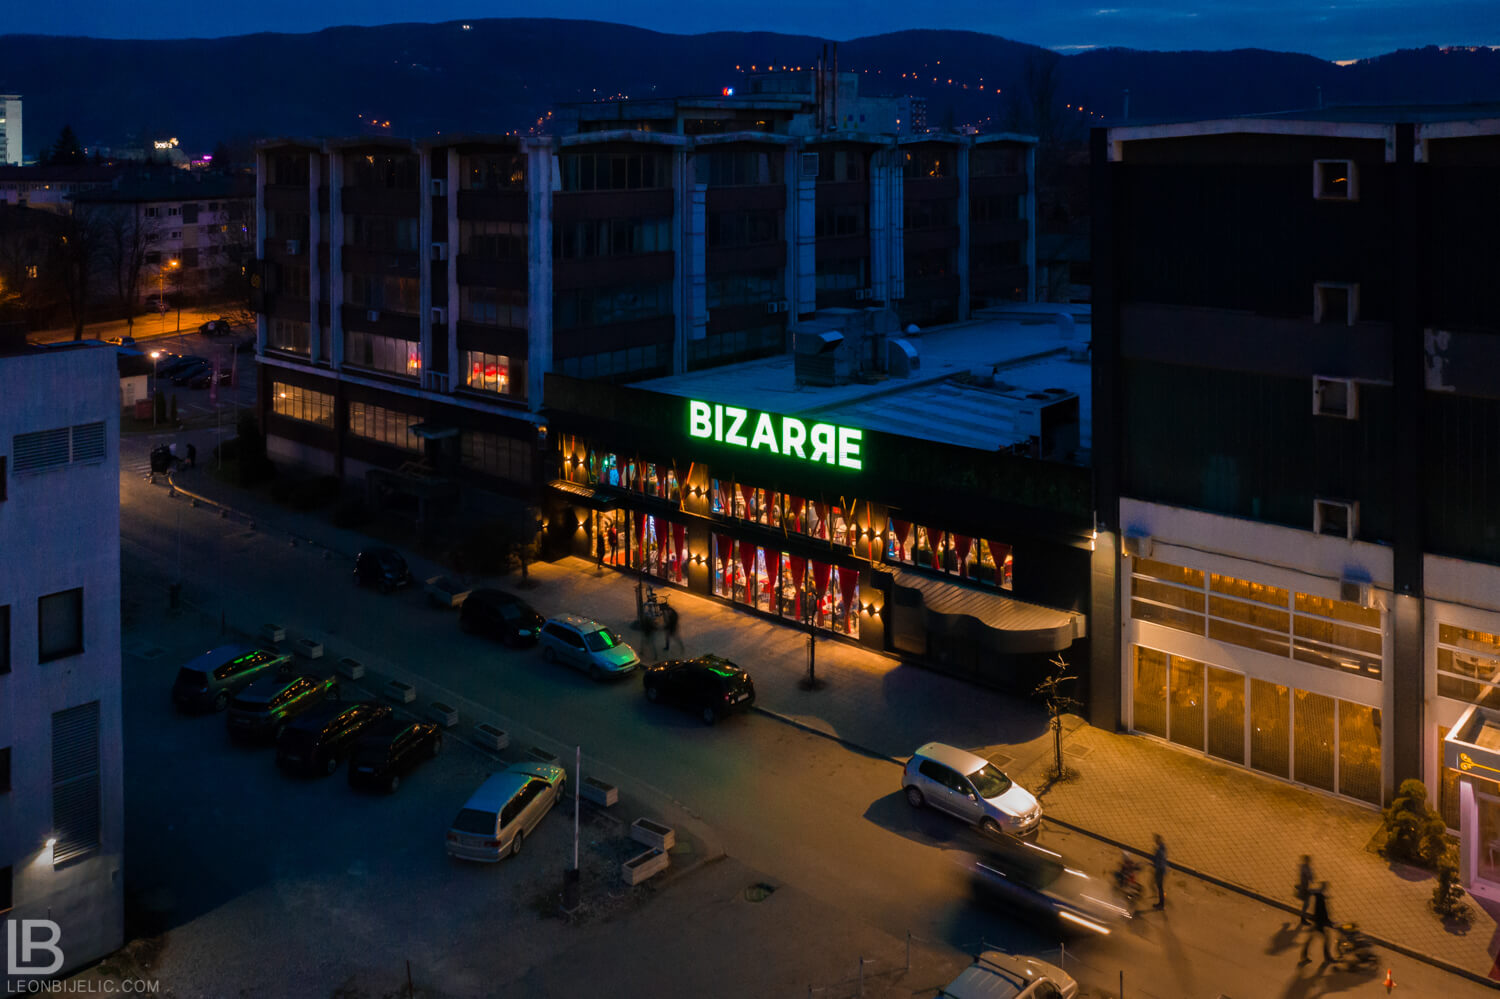 RESTAURANT BIZARRE DIVERSE BAR - OPENING DAY - BANJA LUKA - LEON BIJELIC COMMERCIAL AERIAL PHOTOGRAPHY